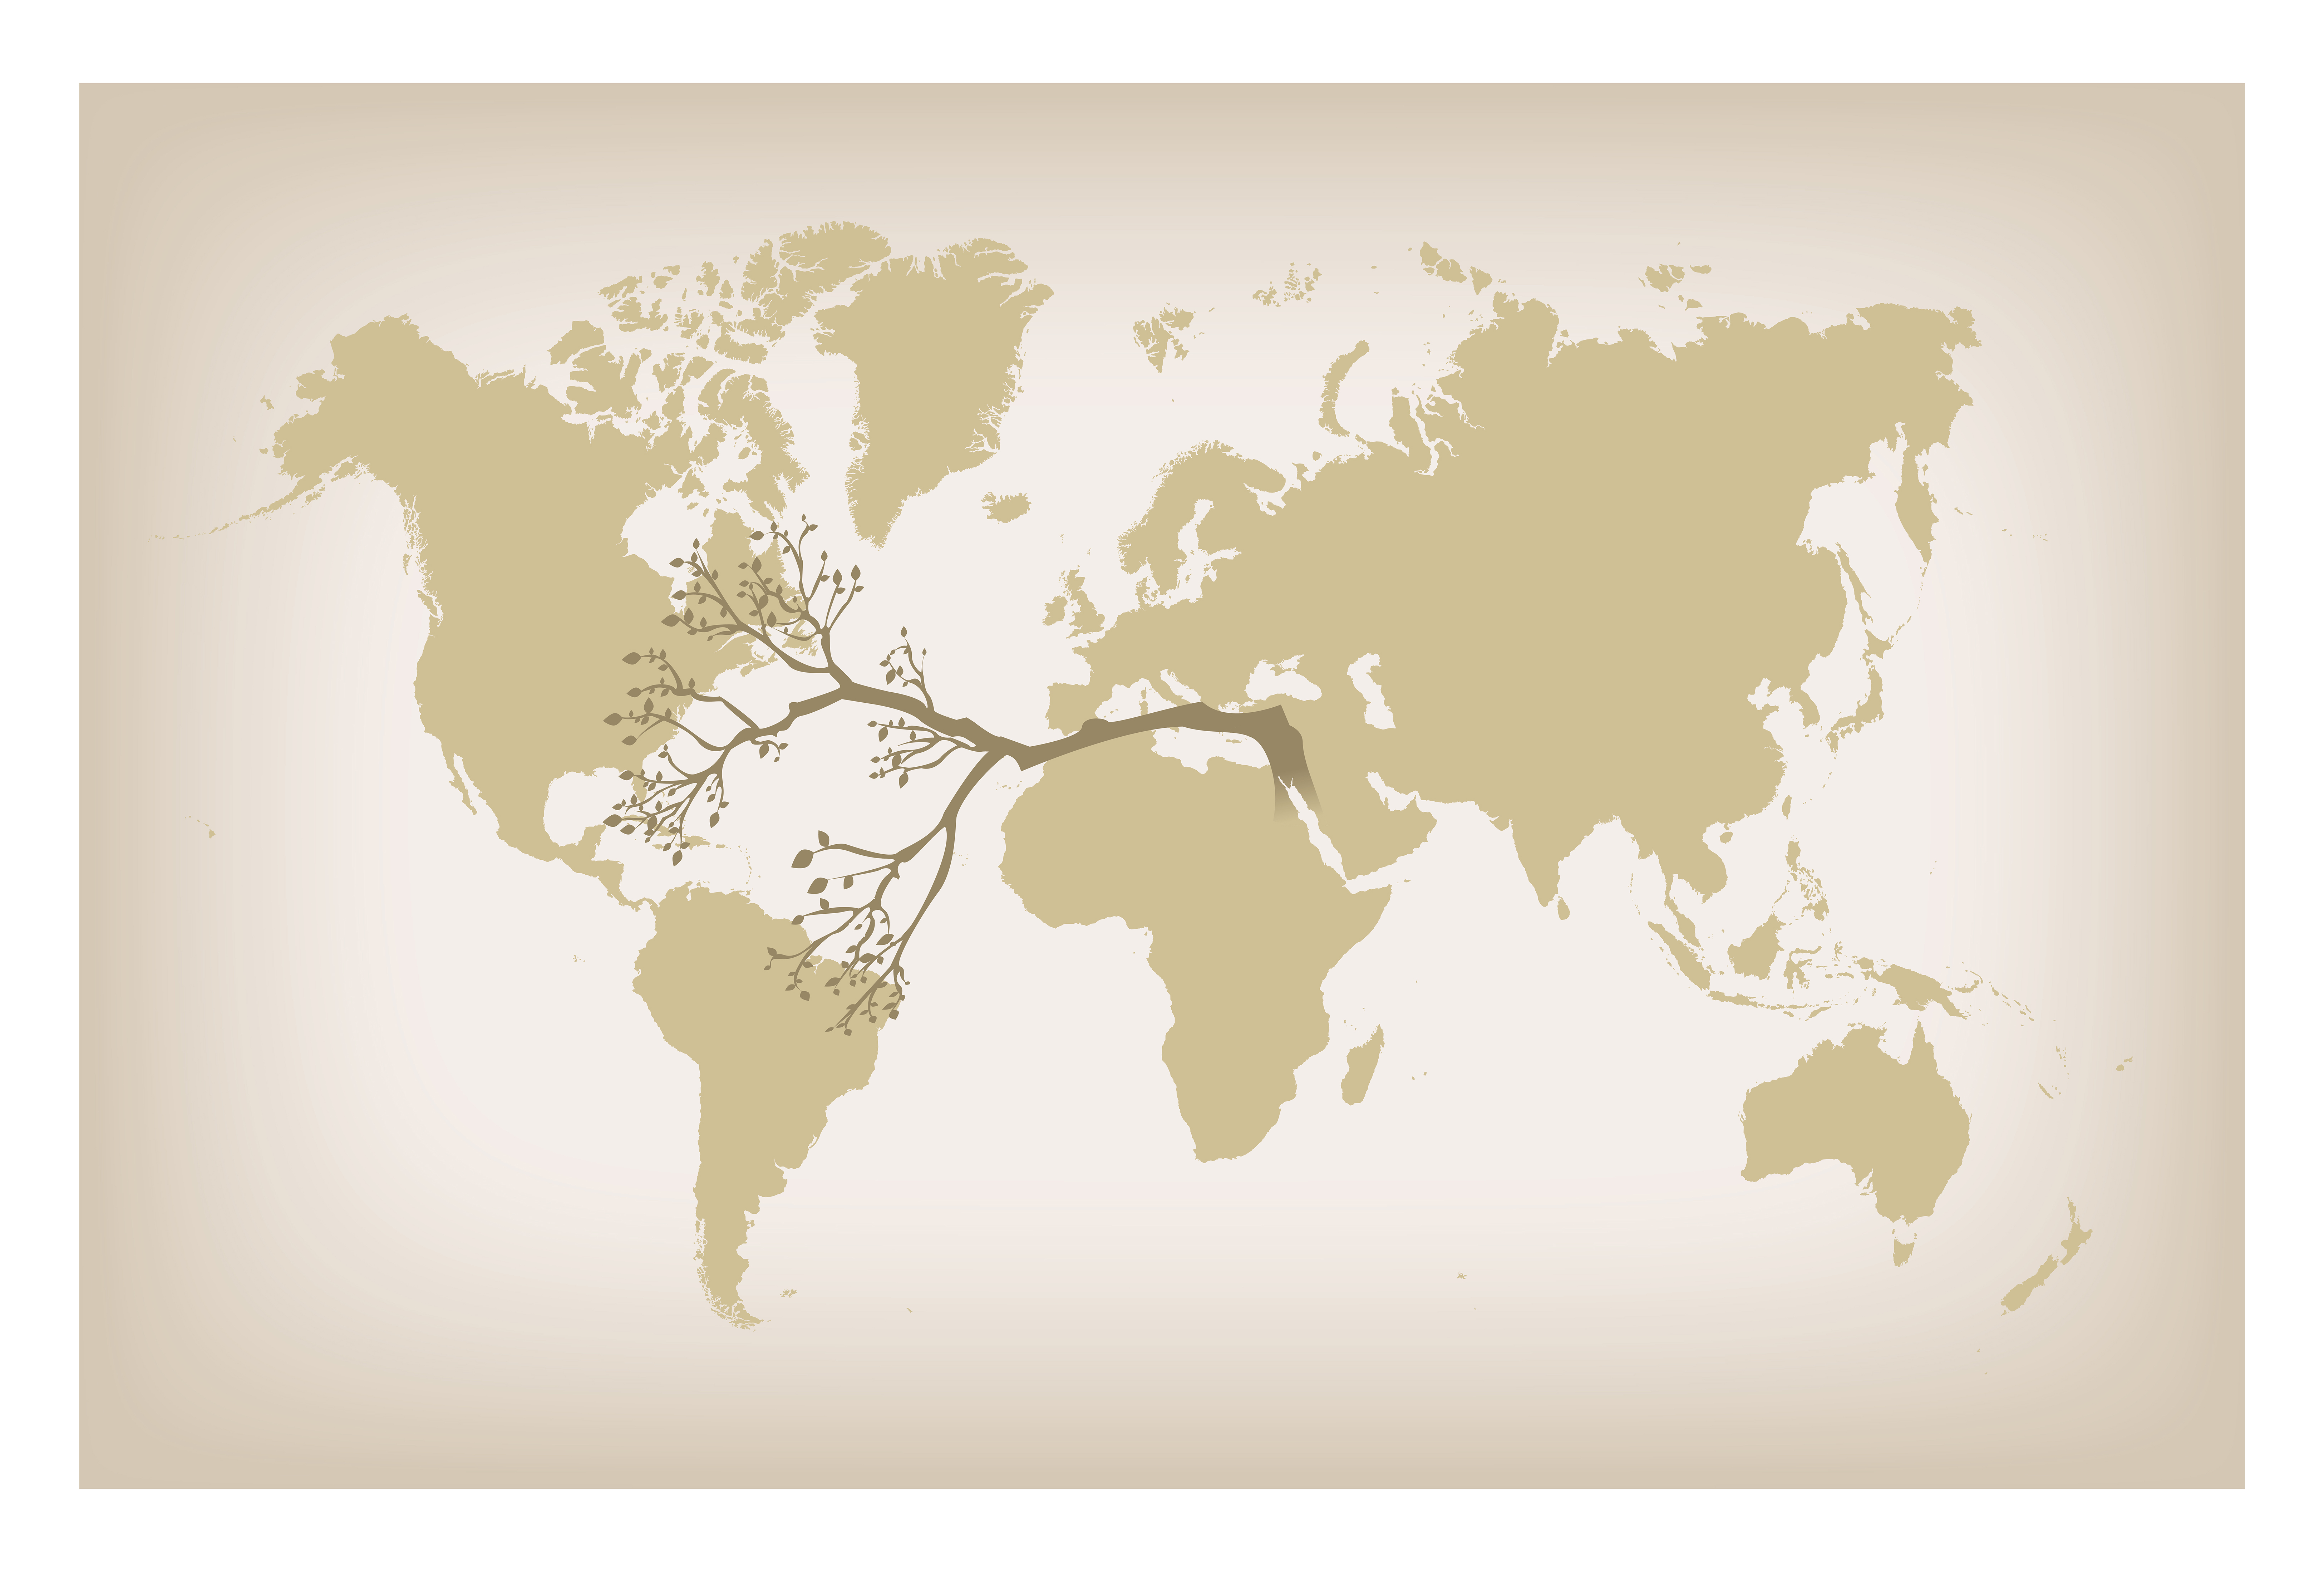 An illustration of a branch spanning several continents on a world map.